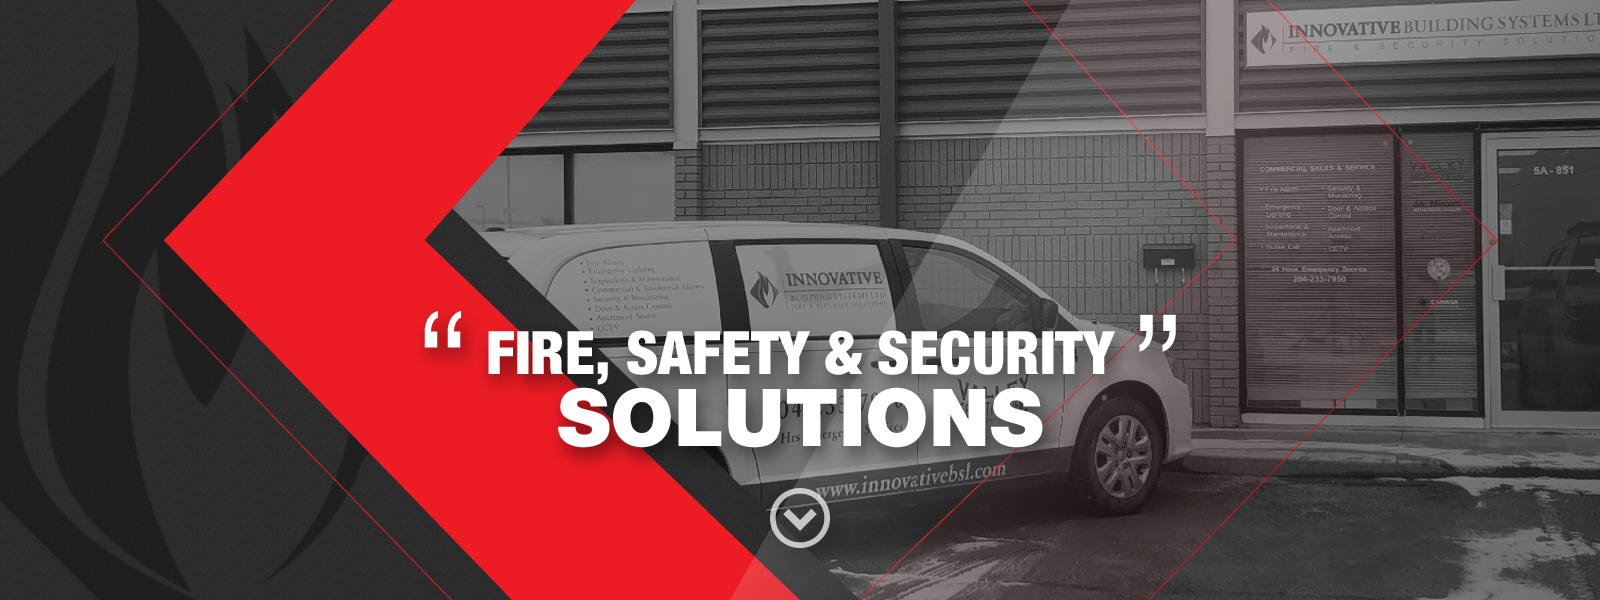 Fire, Safety & Security Solutions